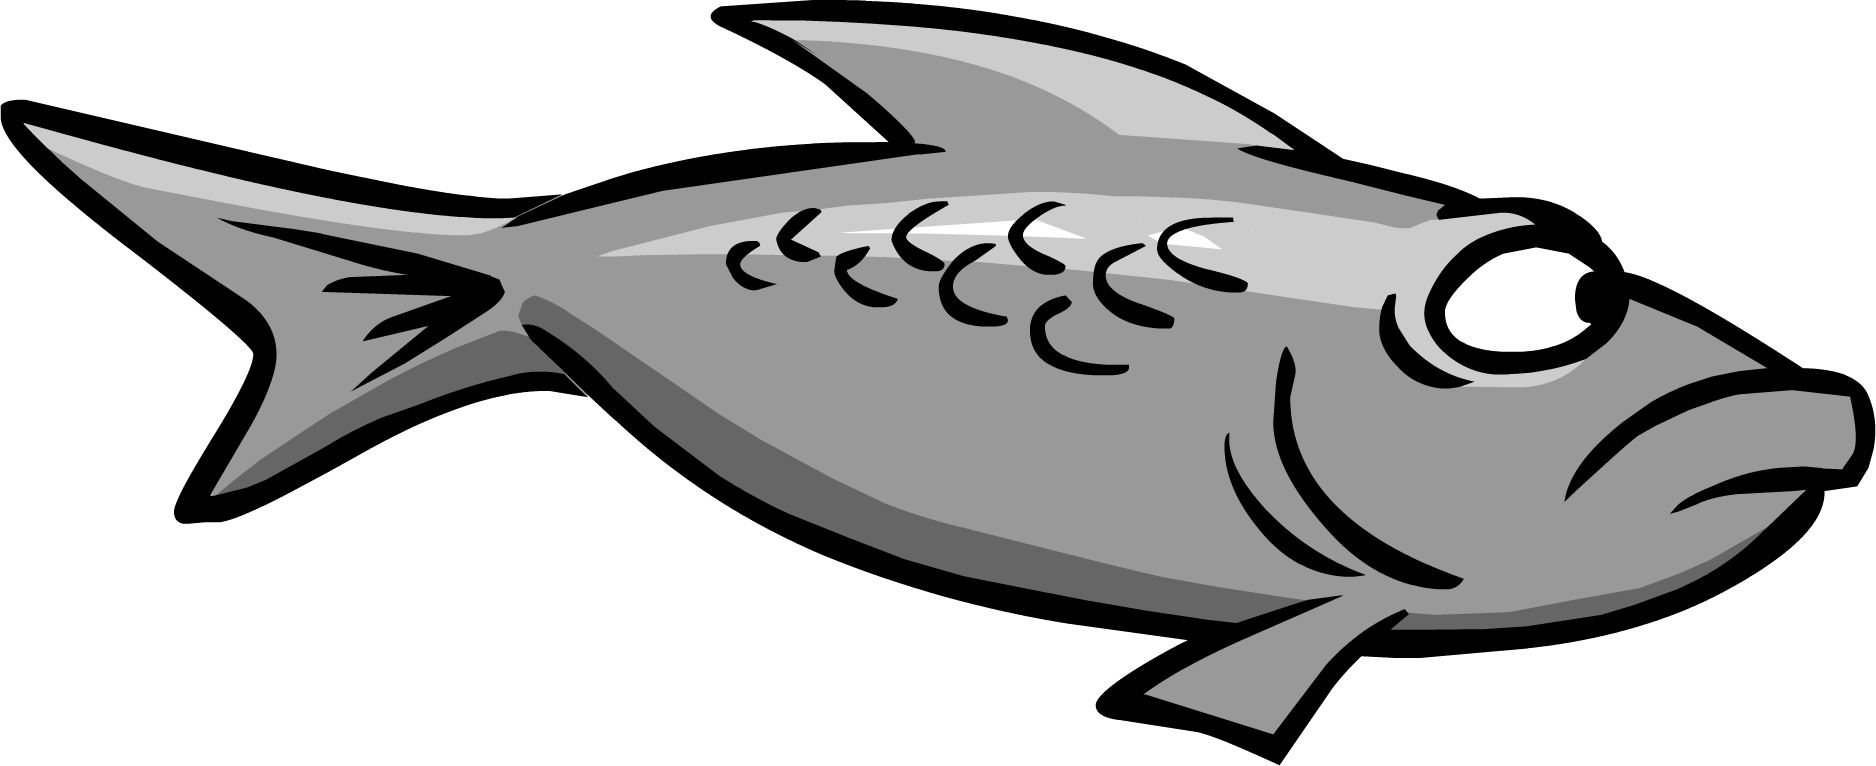 Ducks clipart fish pond game. Image grey swimming png